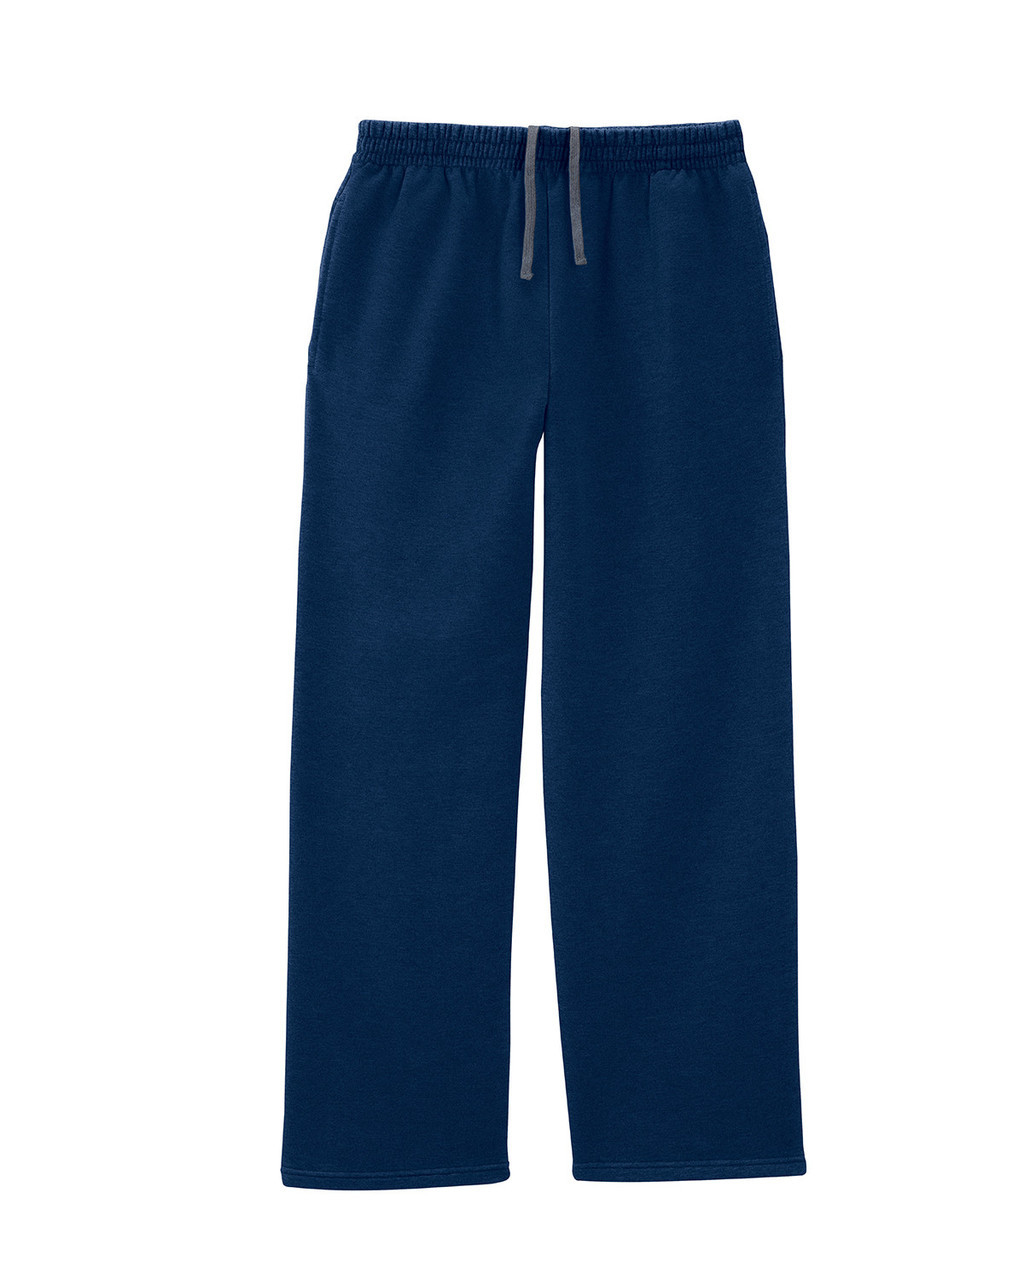 Navy SF74R Fruit of the Loom Softspun Open Bottom Pocket Sweatpants | Blankclothing.ca